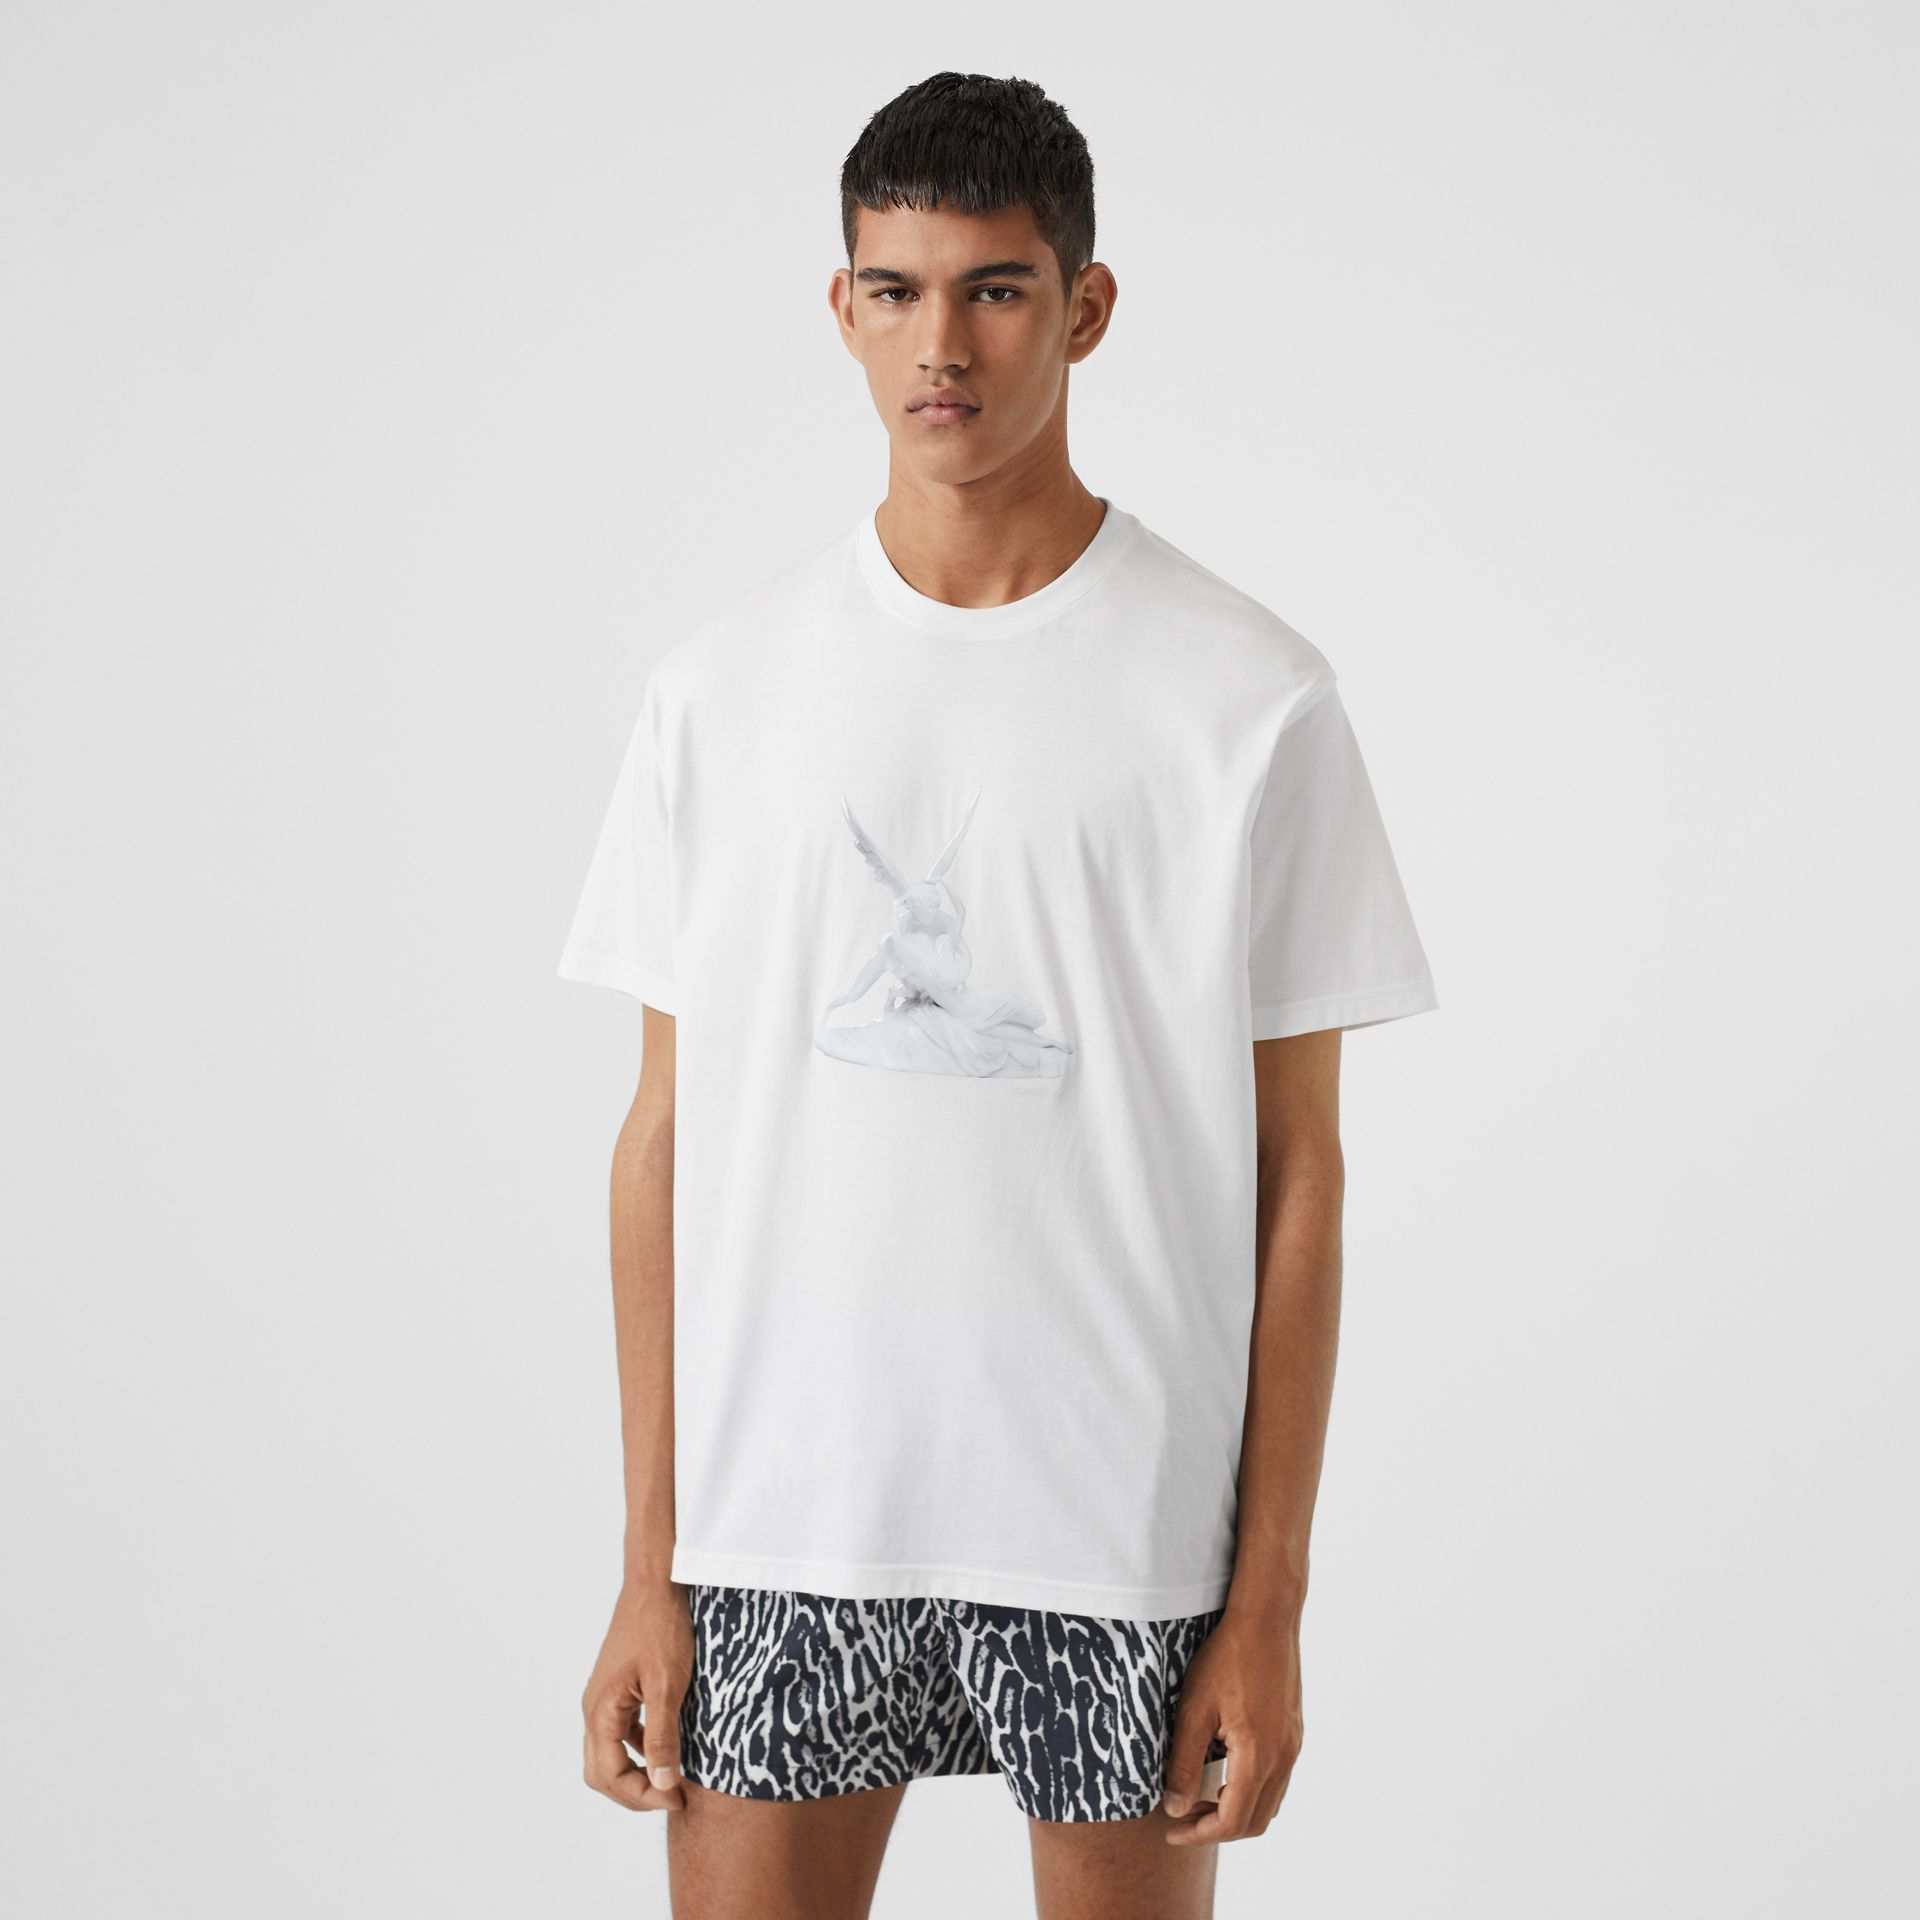 Cupid Print Cotton Oversized T-shirt in White - Men | Burberry - gallery image 5